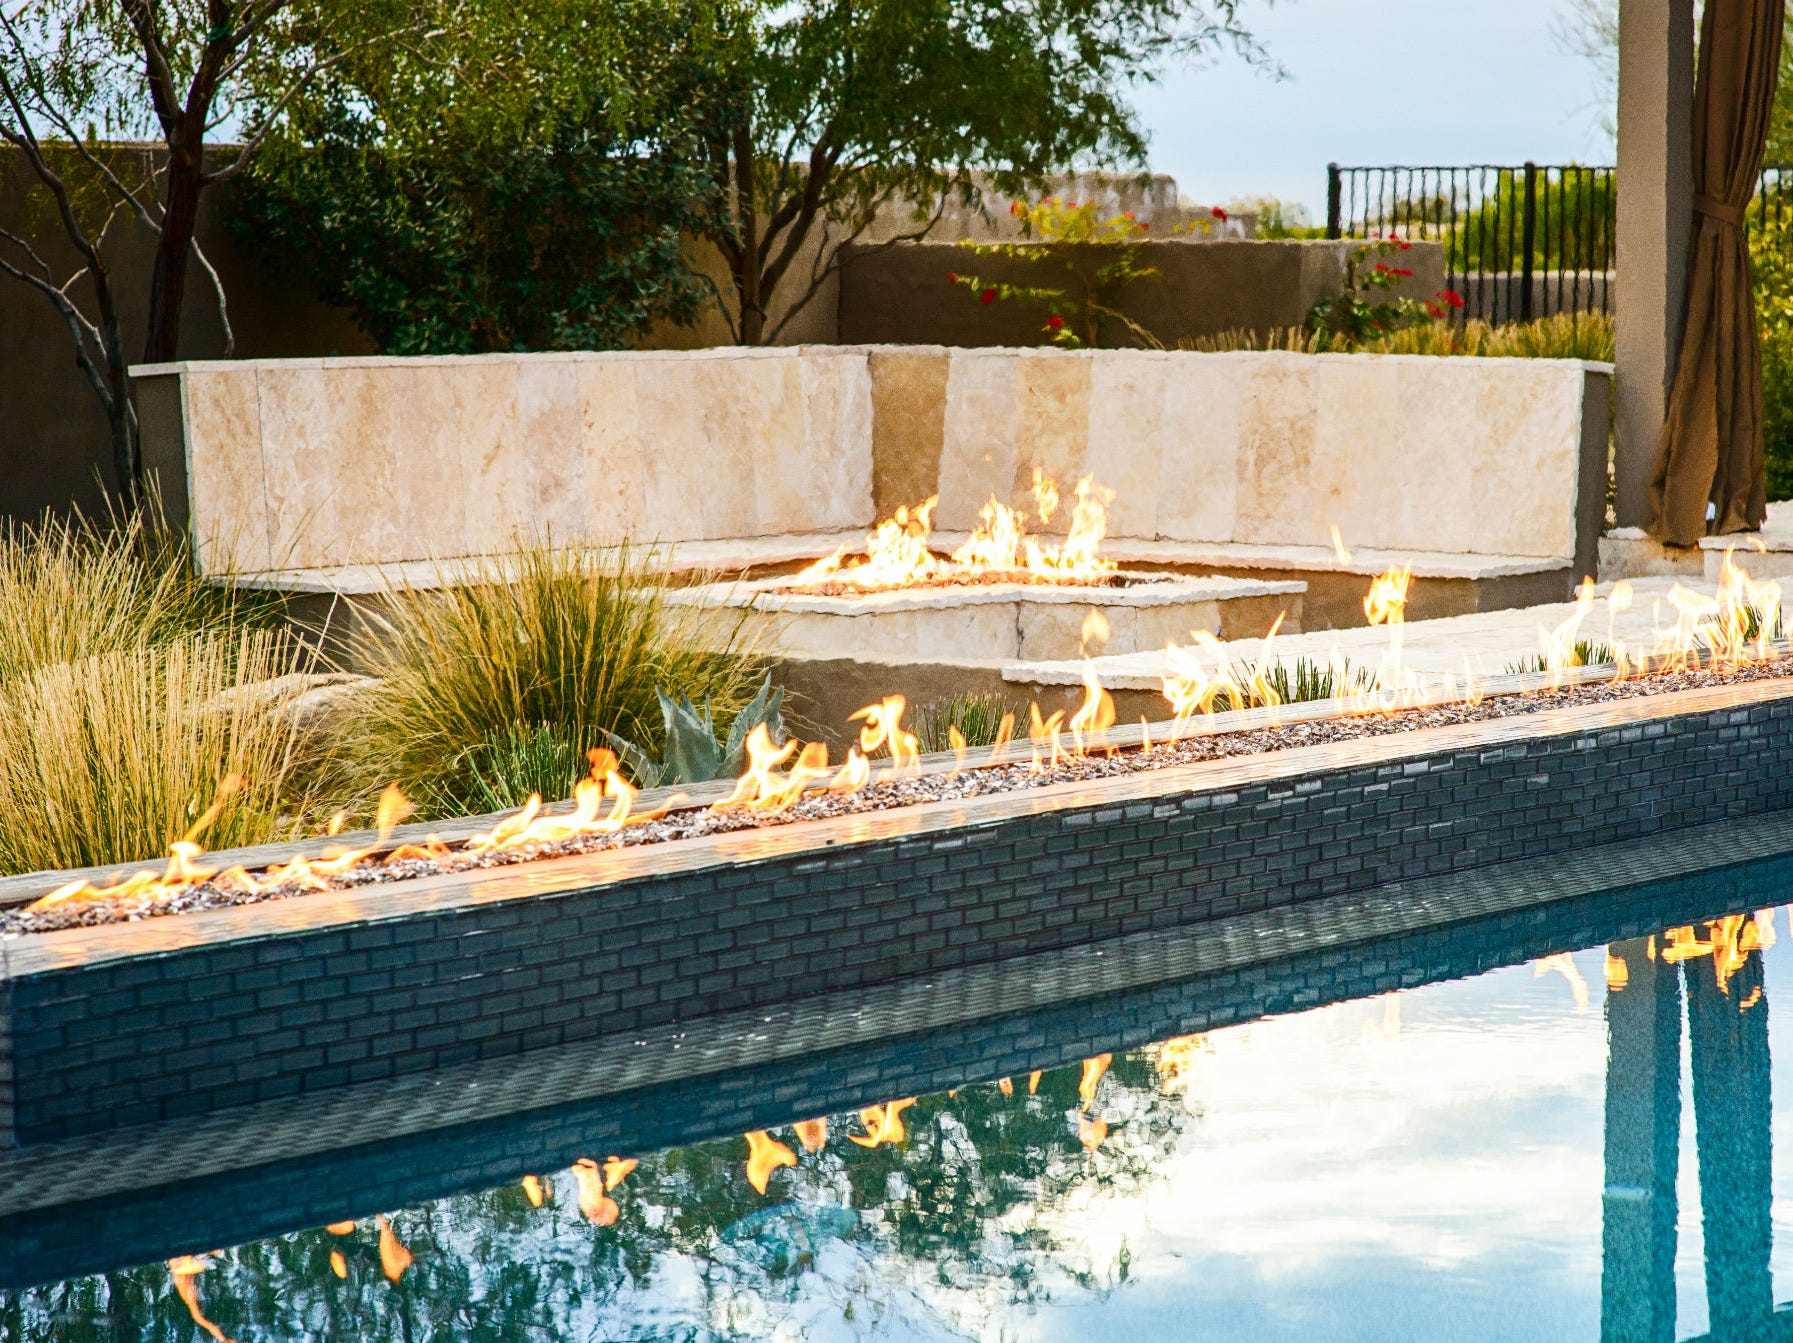 Fire and water are key elements in this backyard, which was designed by Rain Dance Pool & Landscape.